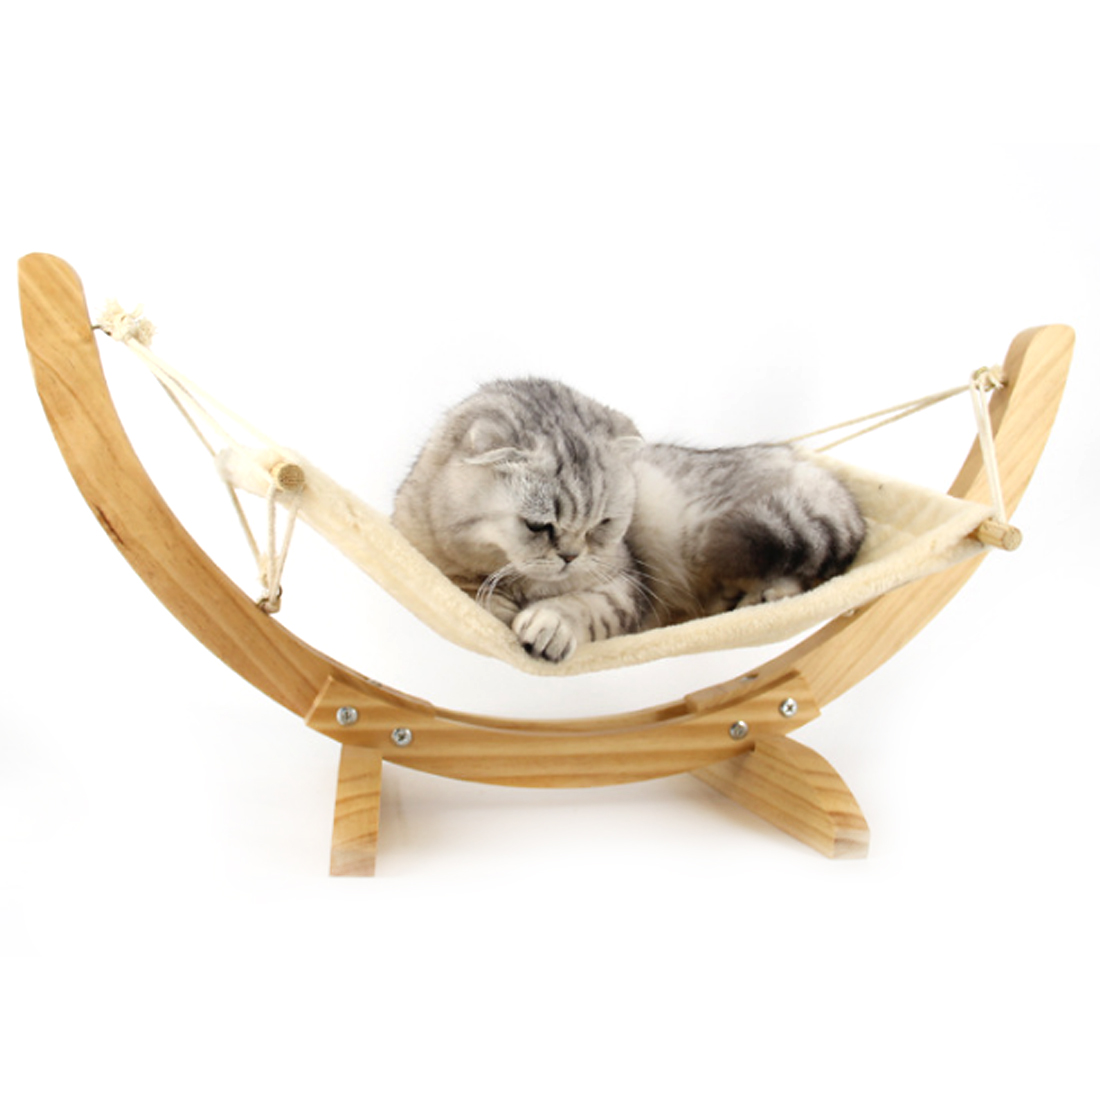 PETFORU Cozy Plush Wooden Frame Cat Hammock Hanging Beds